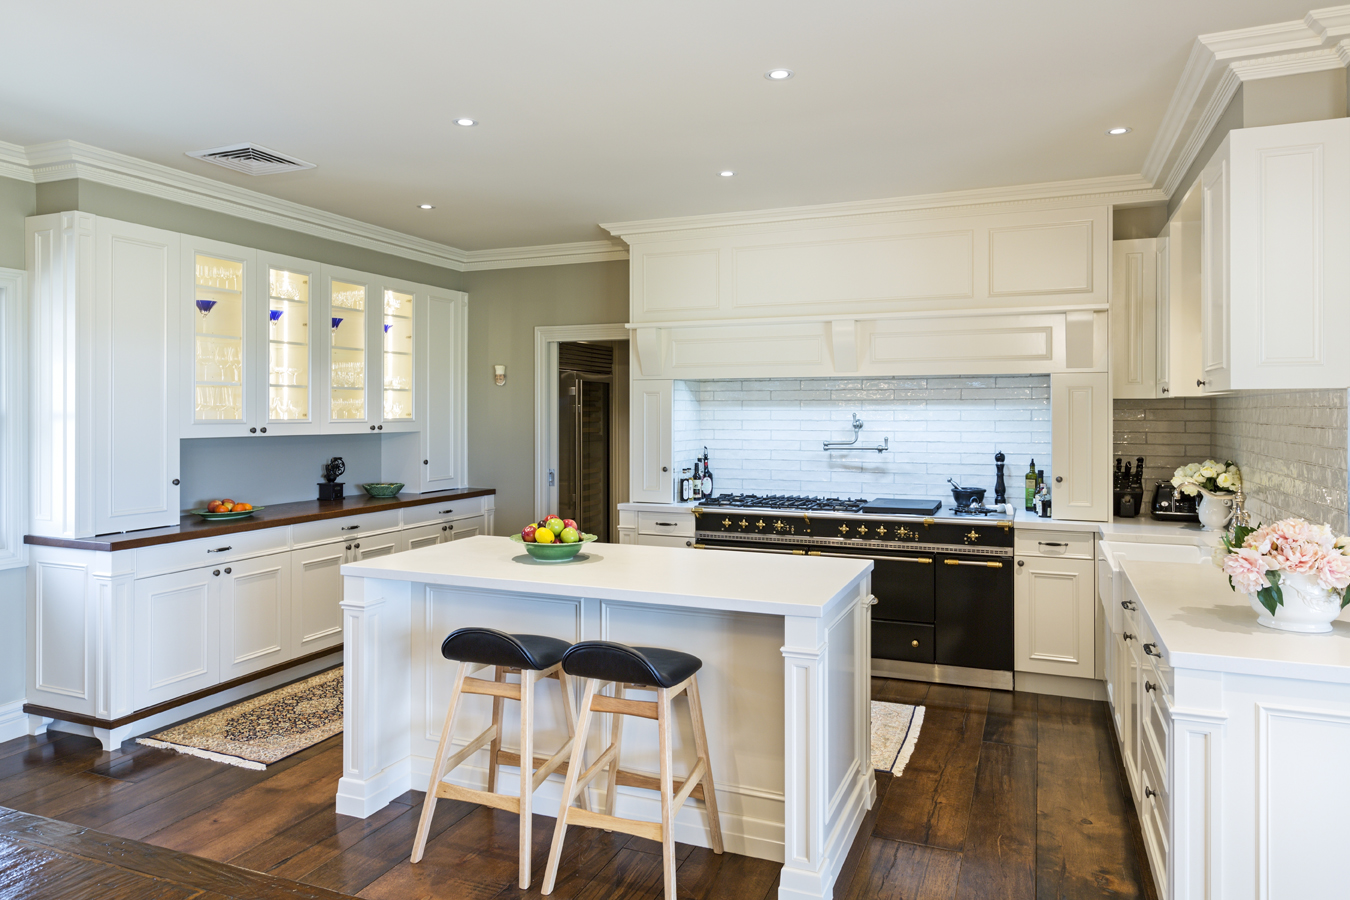 A perfectly provincial kitchen with a modern twist